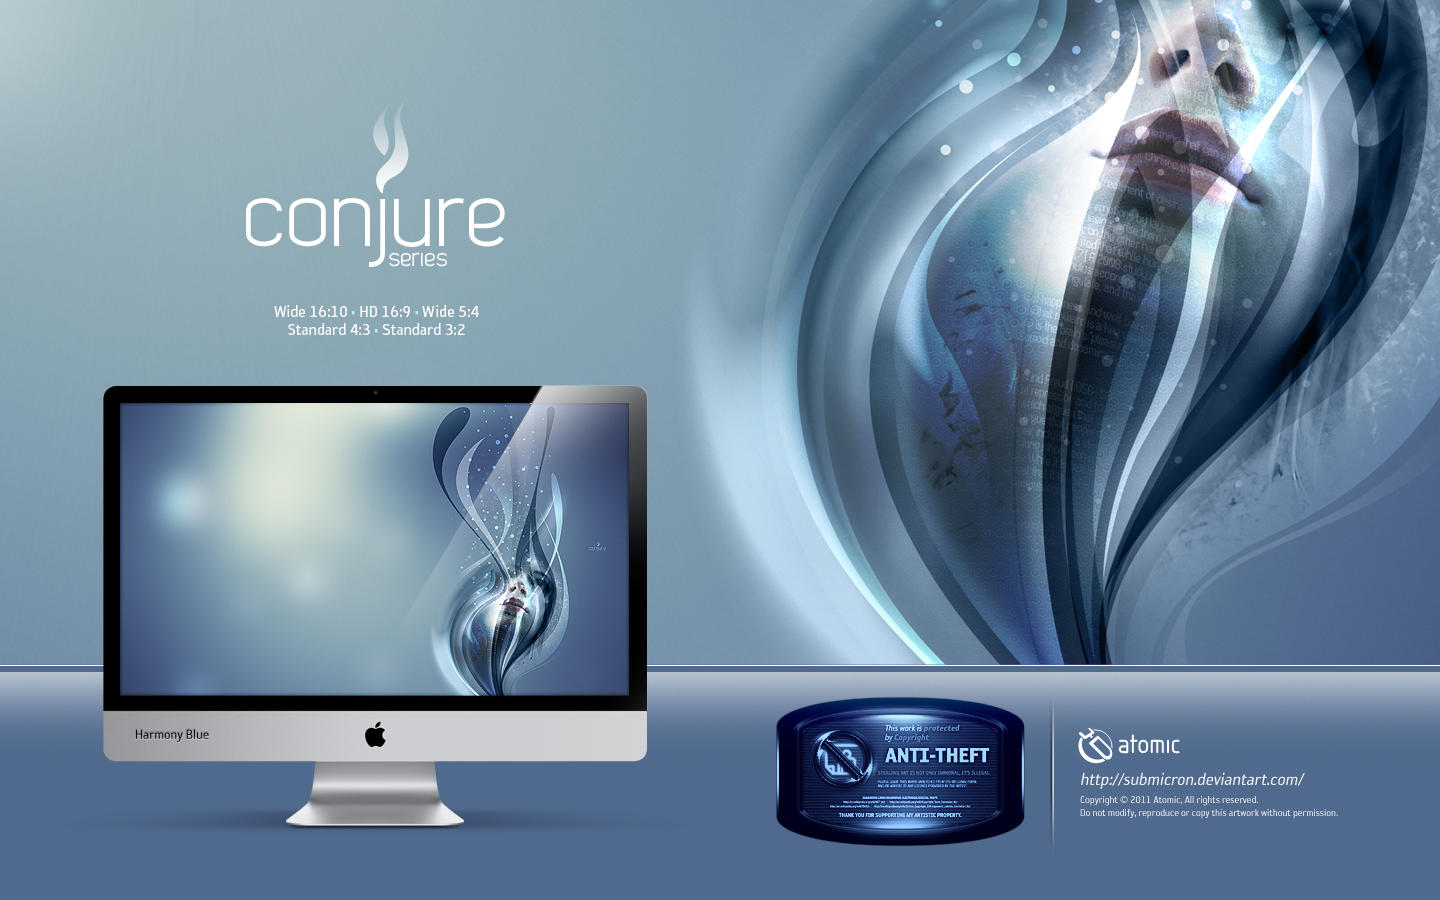 Conjure Harmony Blue by submicron